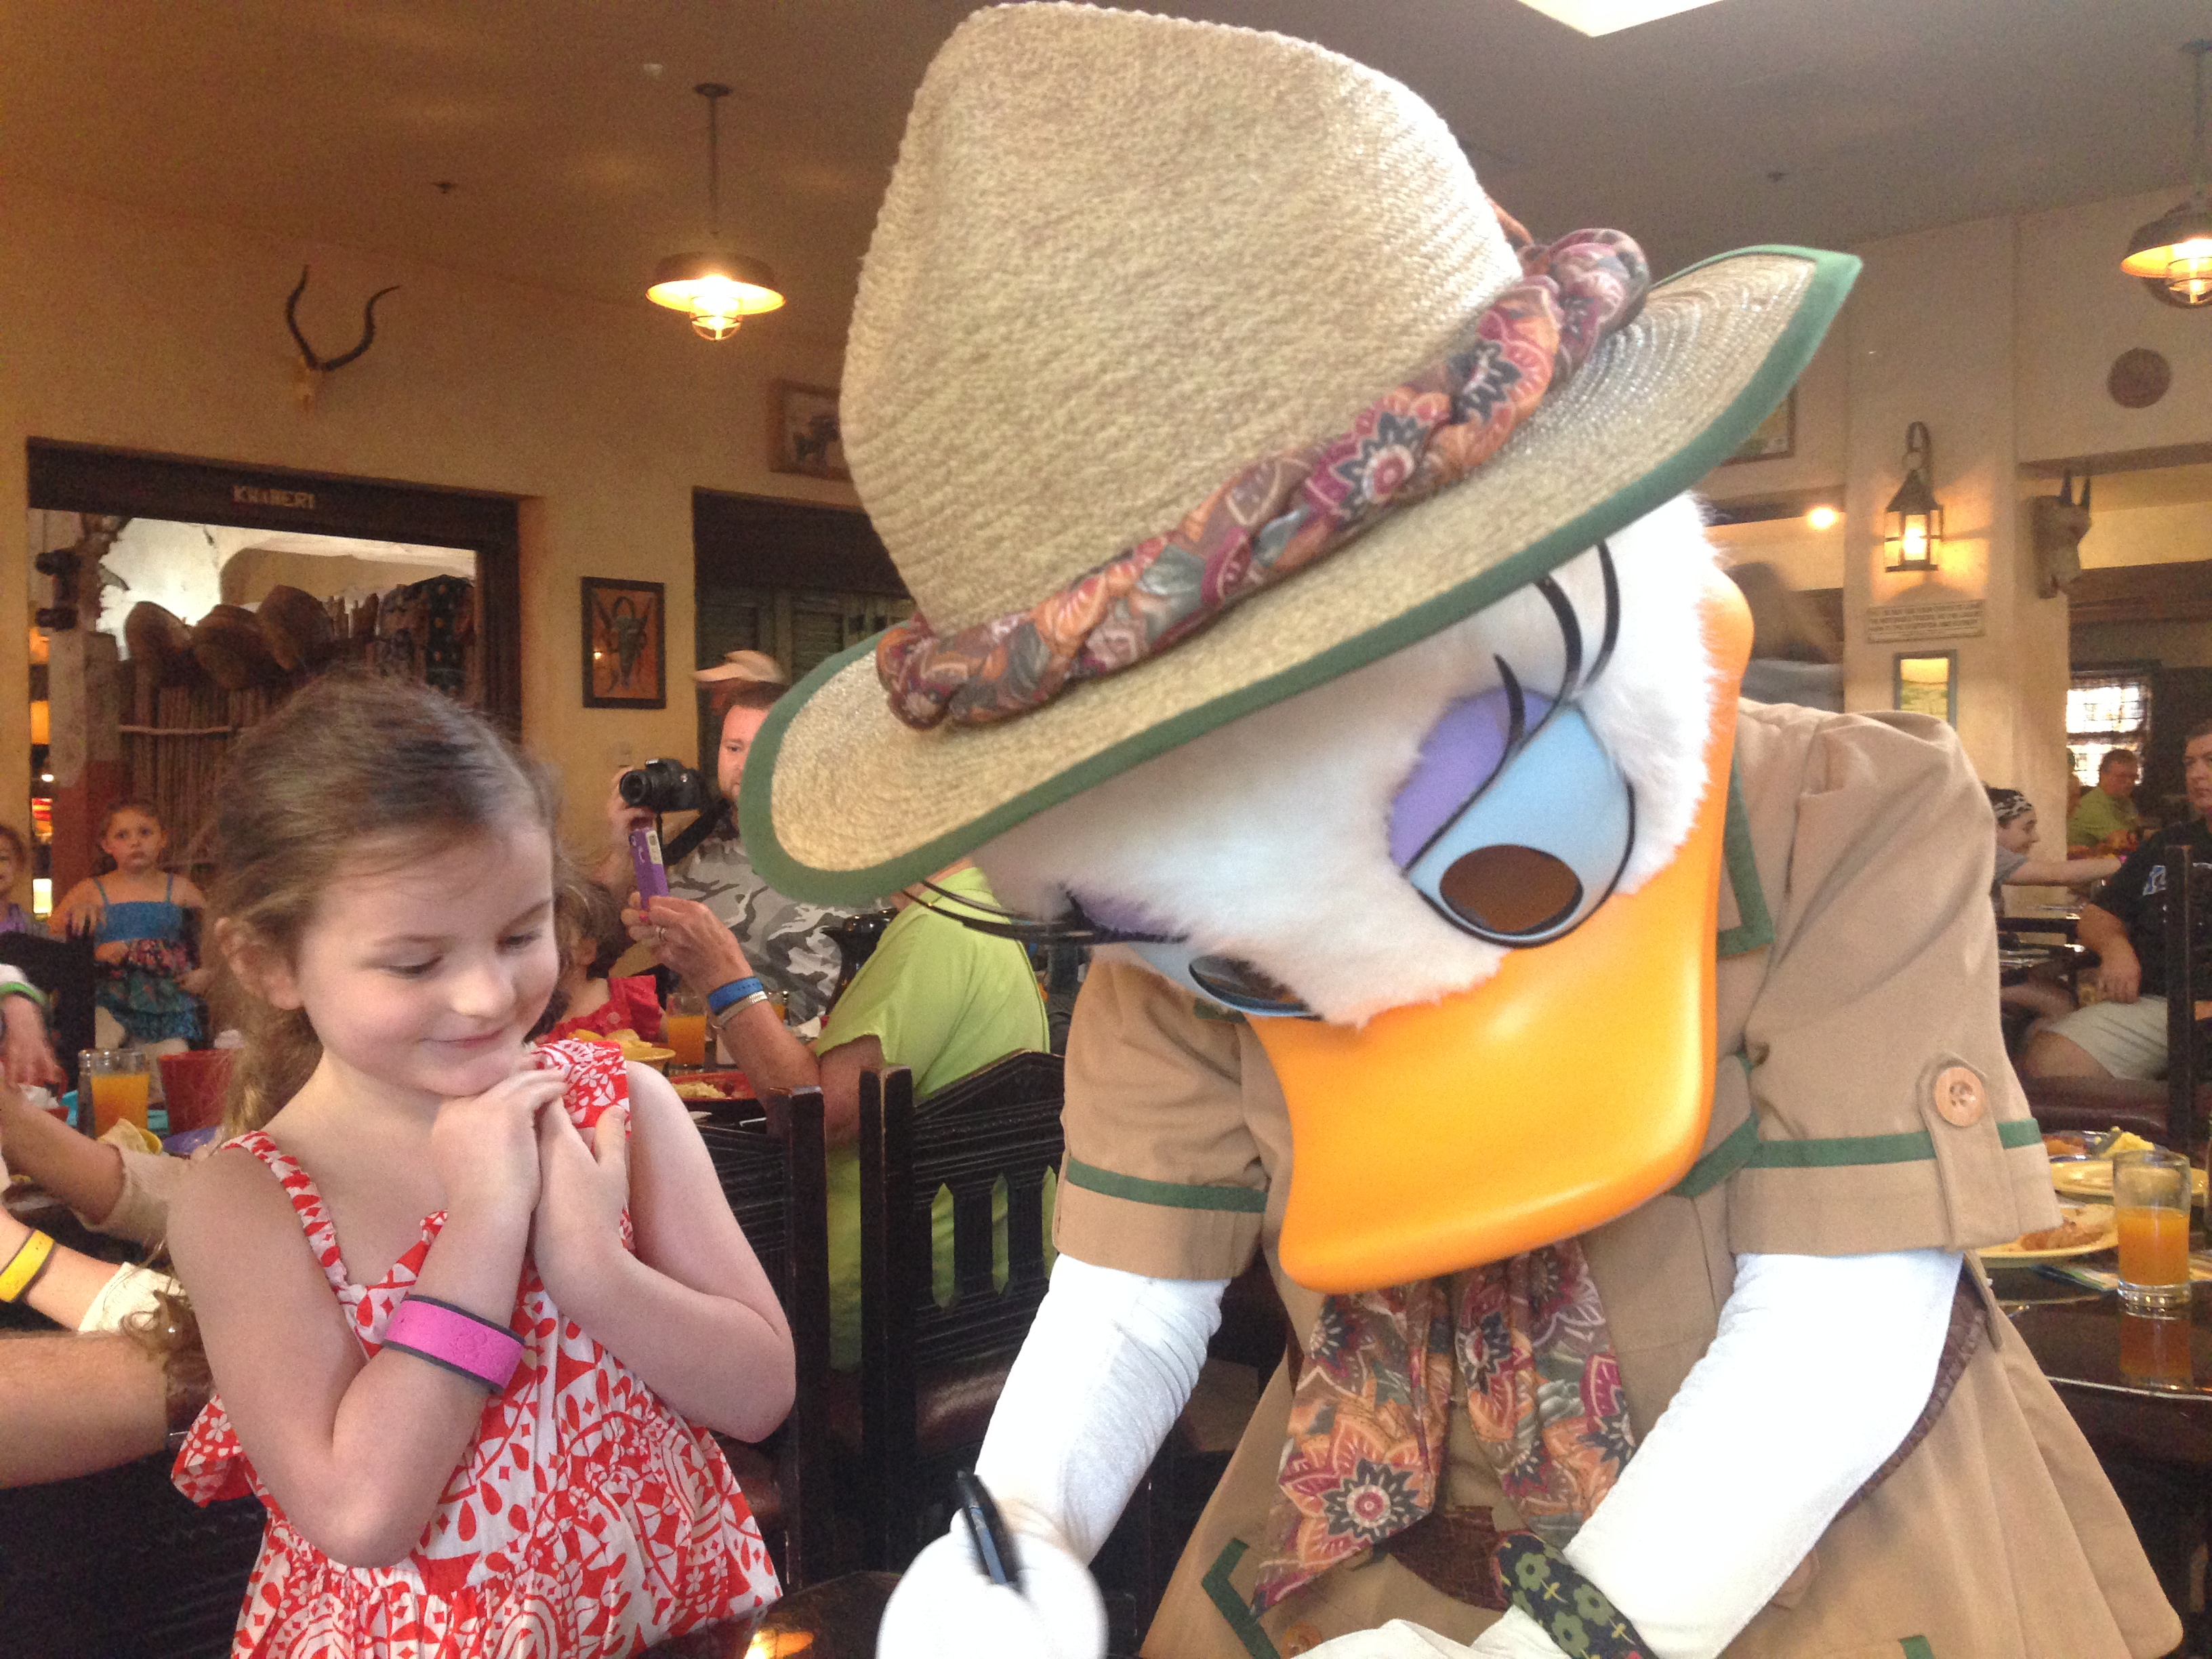 Lucy was so enamored with Daisy. She loved her eyelashes.